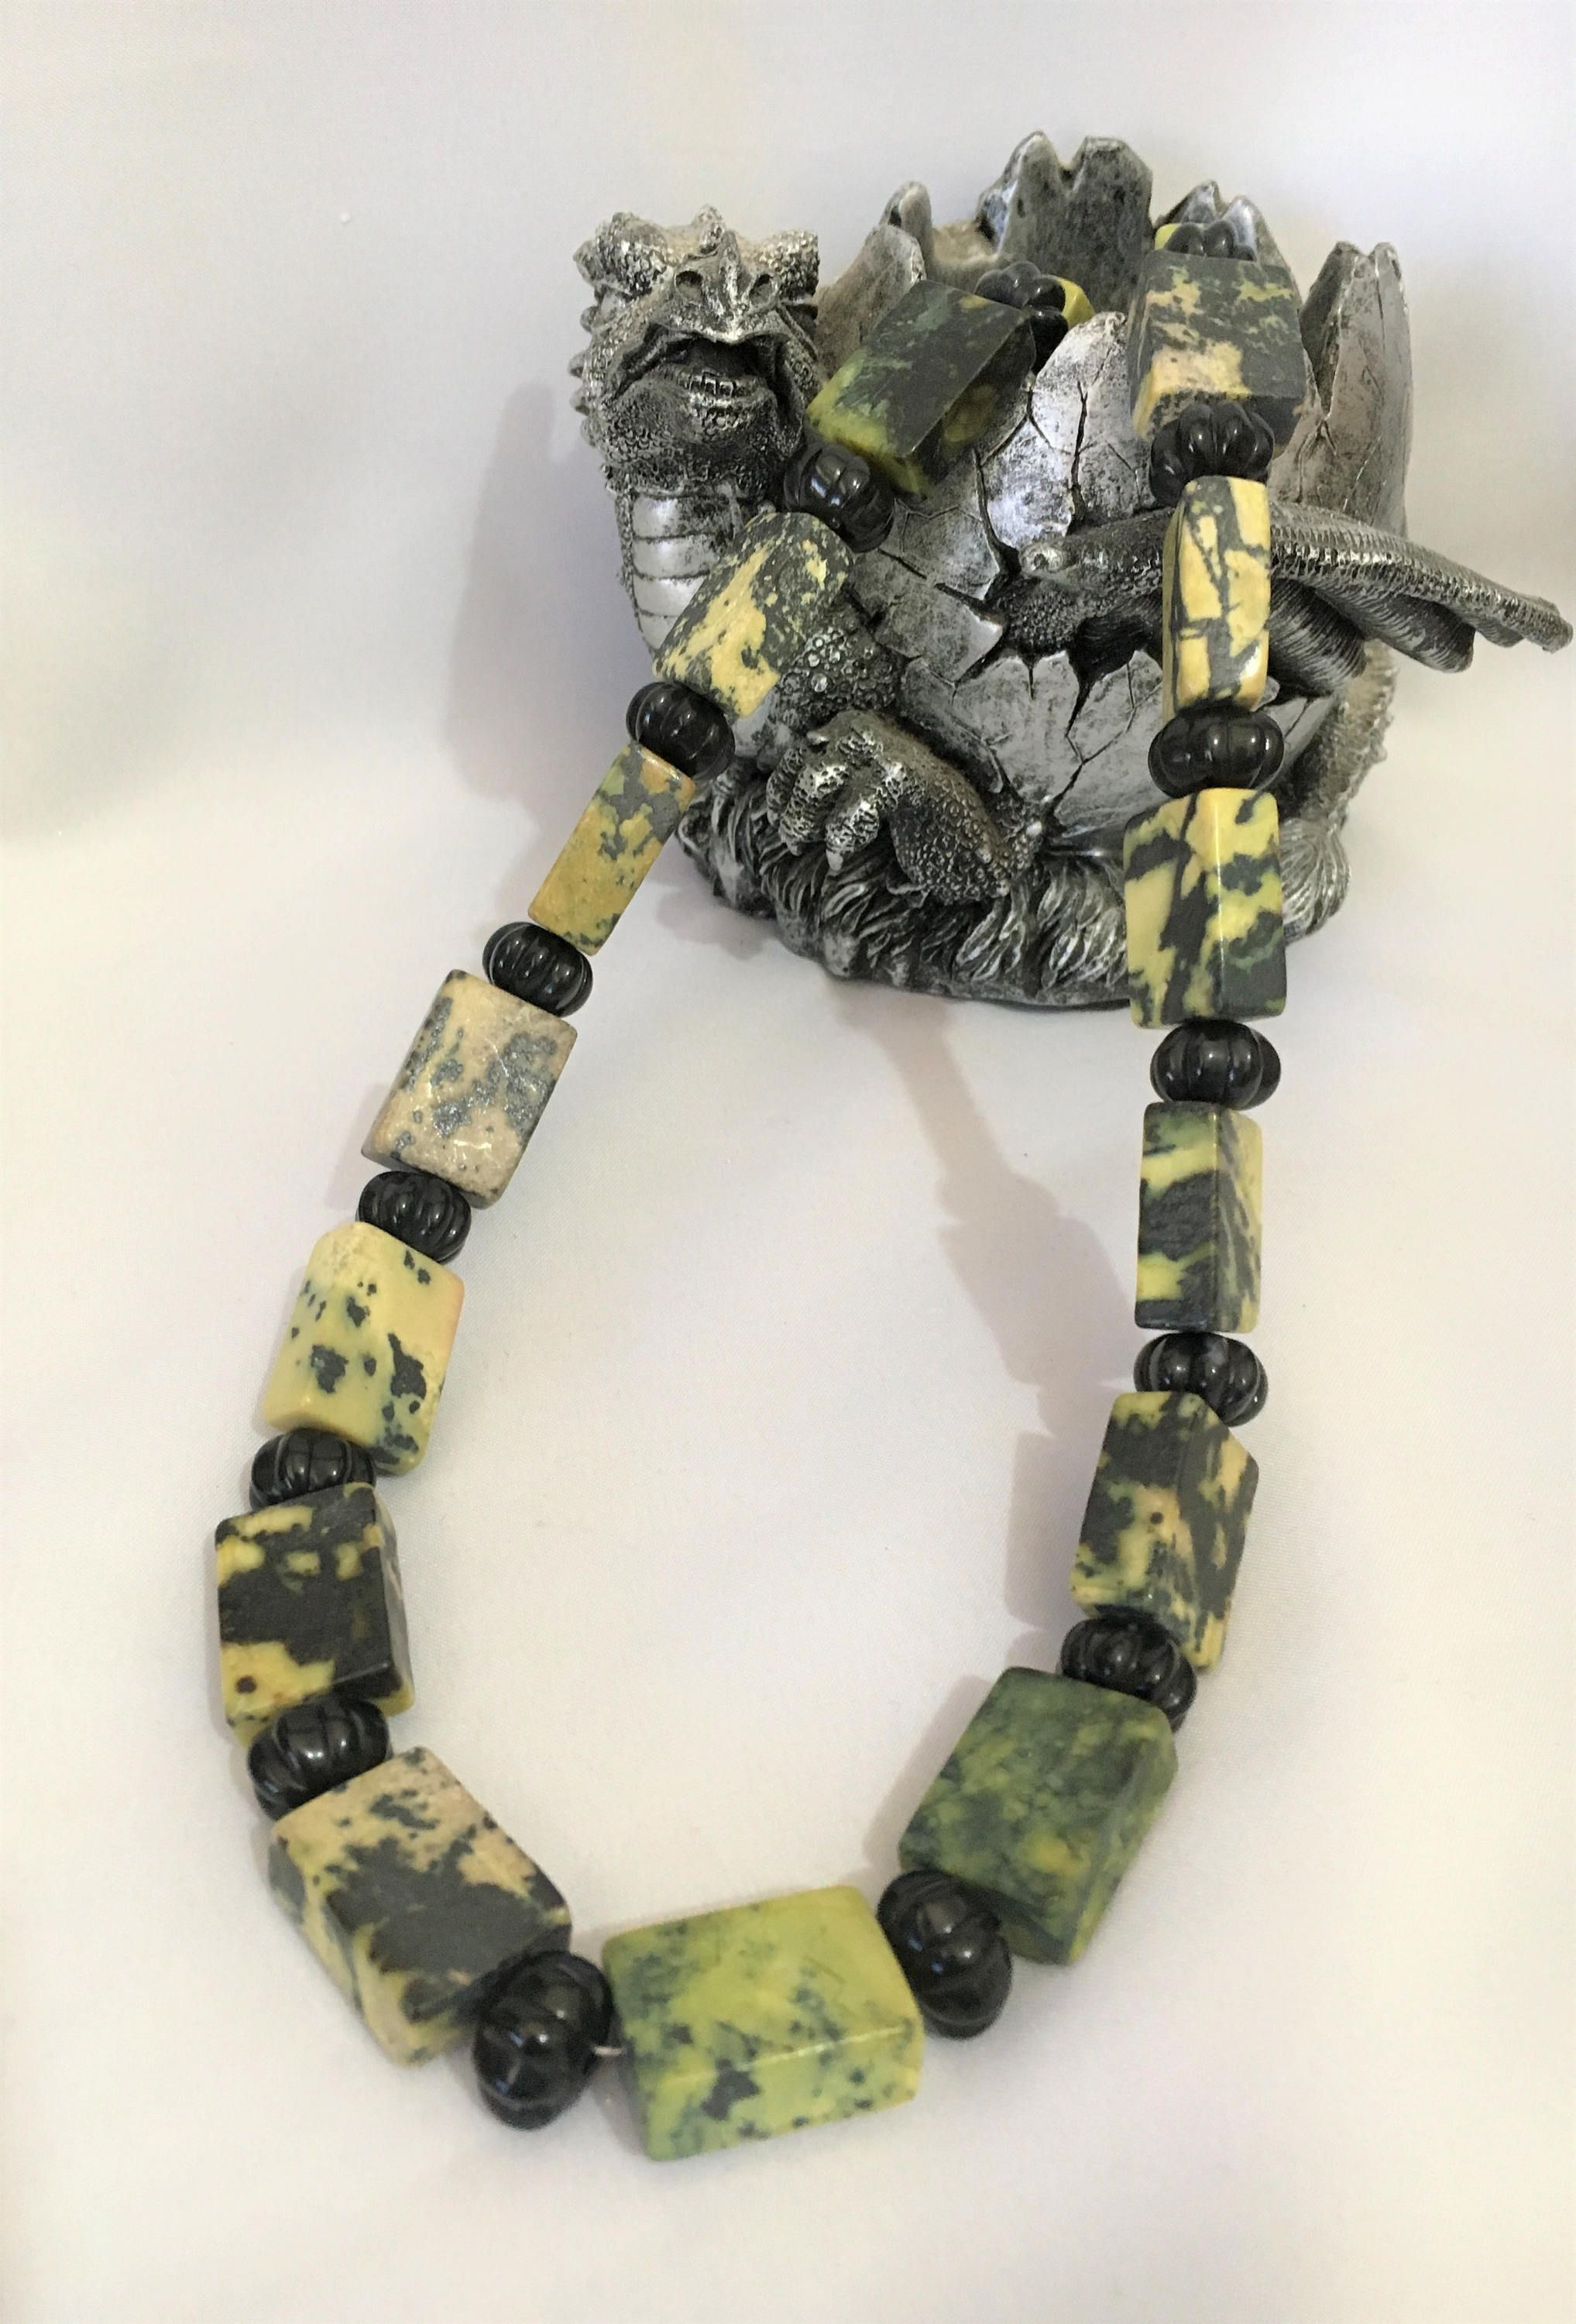 yellow glass beads for vases of jasper necklace semi precious stone necklace gemstone necklace within jasper necklace semi precious stone necklace gemstone necklace yellow and black necklace rectangular bead necklace crystal necklace by